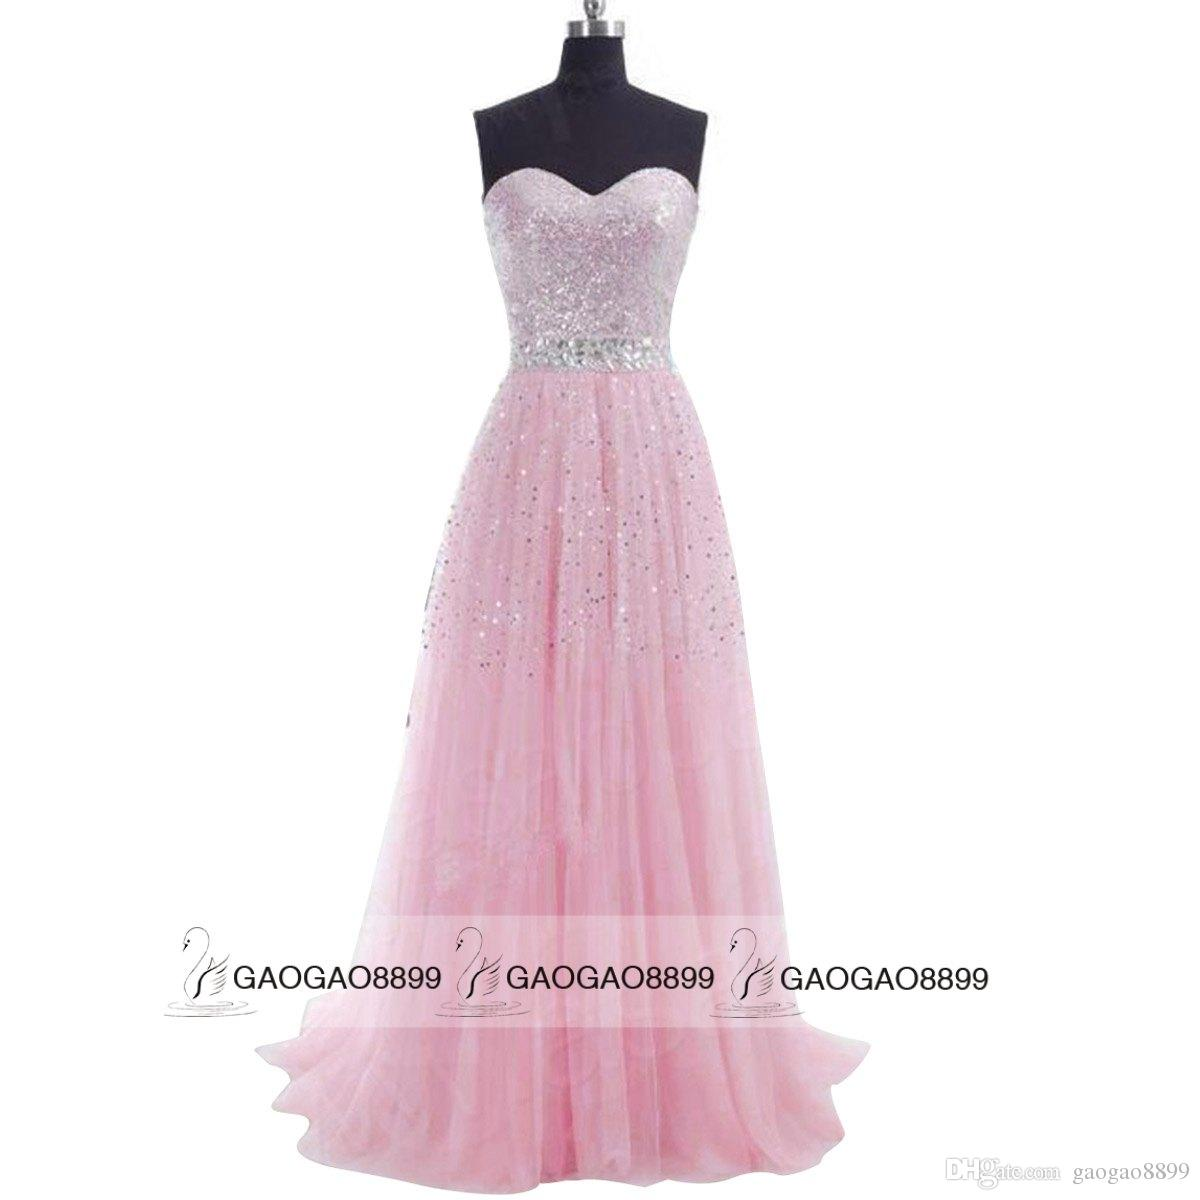 Sweetheart Sequins Tulle Evening Prom Dresses Long Champagne Mint Pink Blue Grey Lilac Beads Bridesmaid Party Gowns 2019 In Stock Cheap